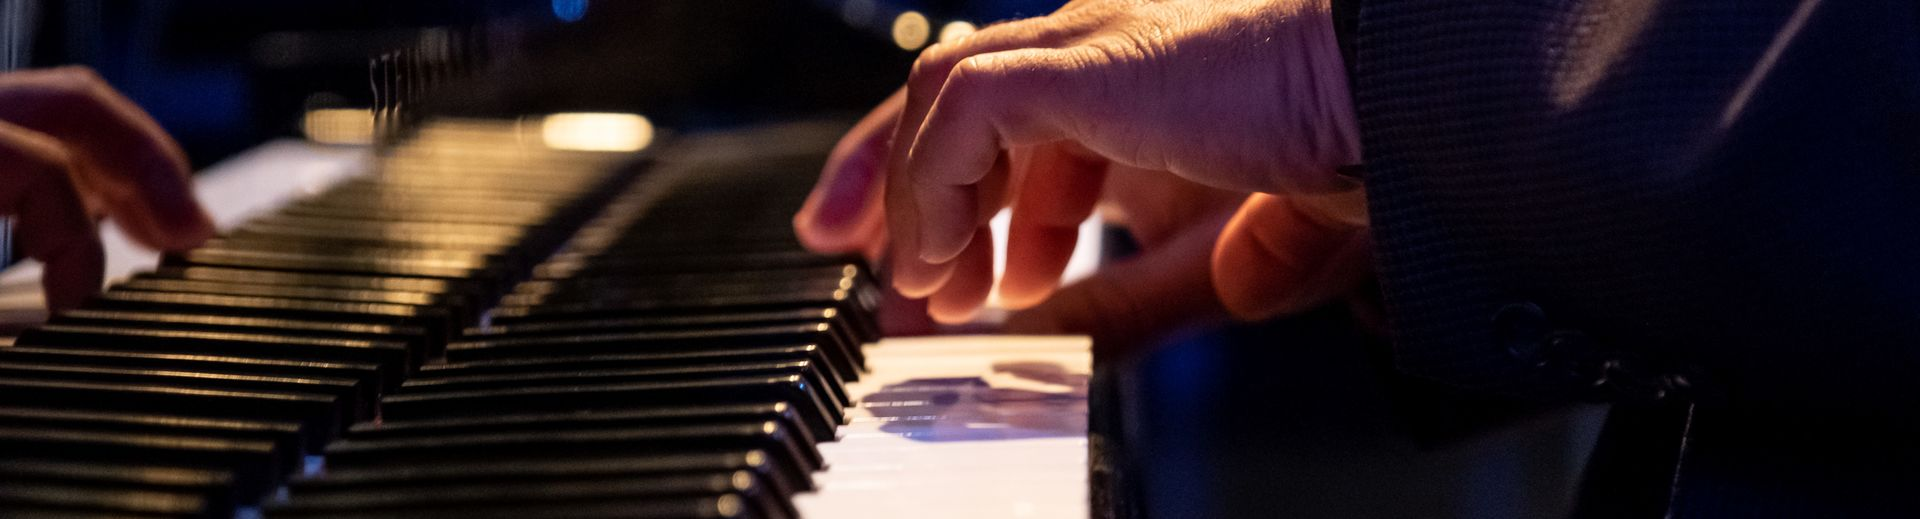 Hands of a pianist on a Steinway grand piano at a performance